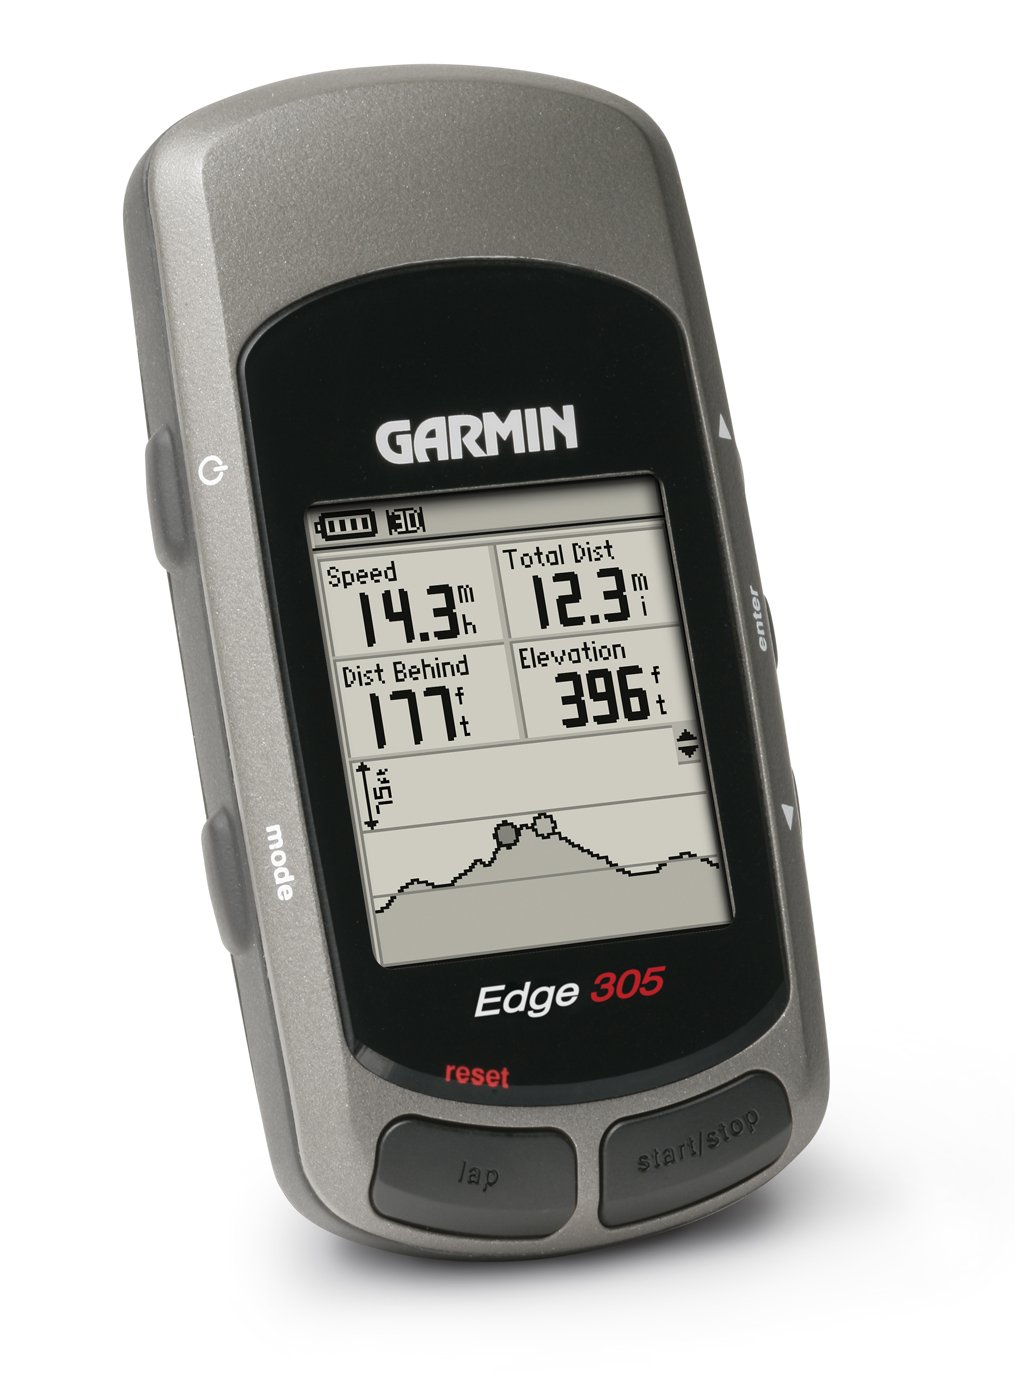 amazon com garmin edge 305 waterproof cycling gps with heart rate rh amazon com Garmin Edge 305 Holder Garmin Edge 305 Reset